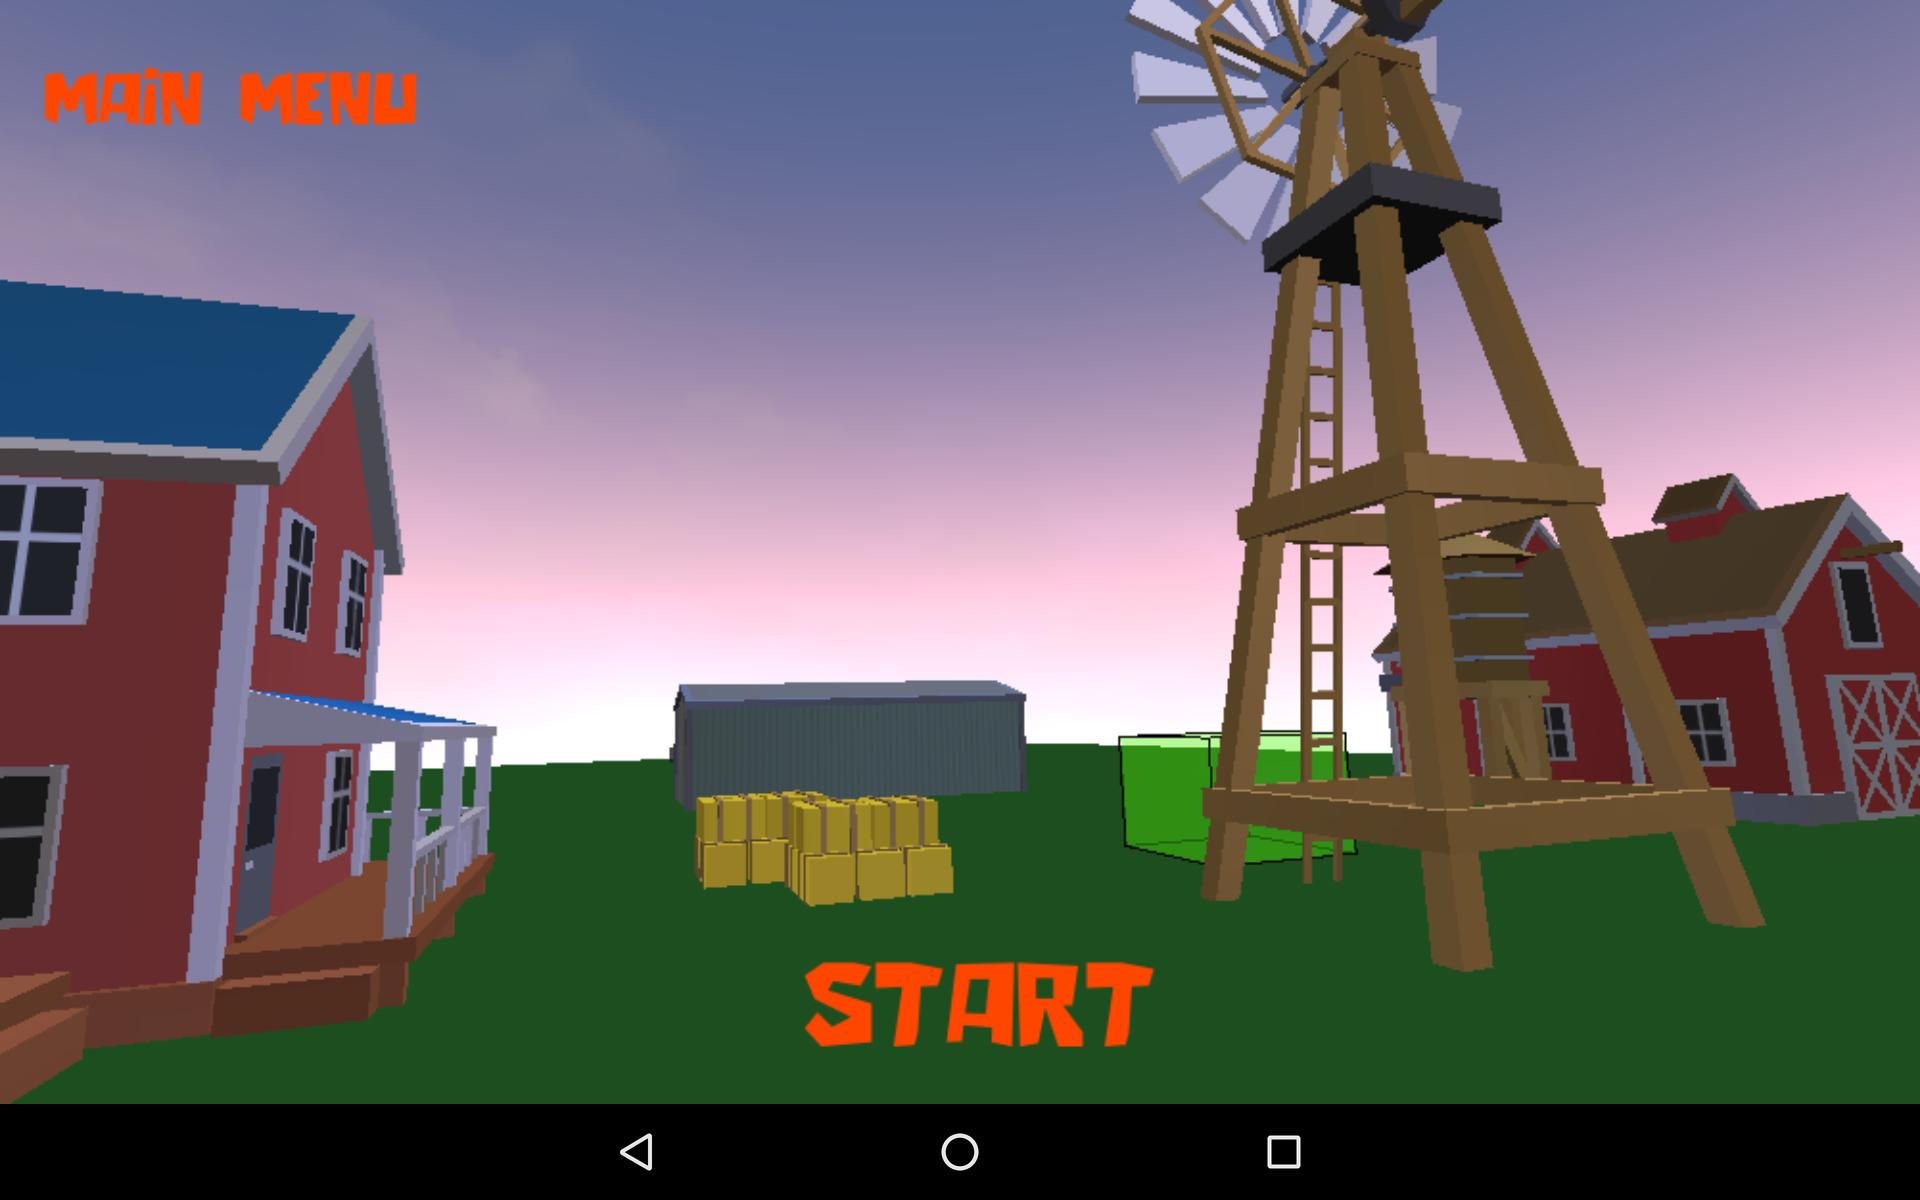 Crazy Ragdoll Physics Game for Android - APK Download